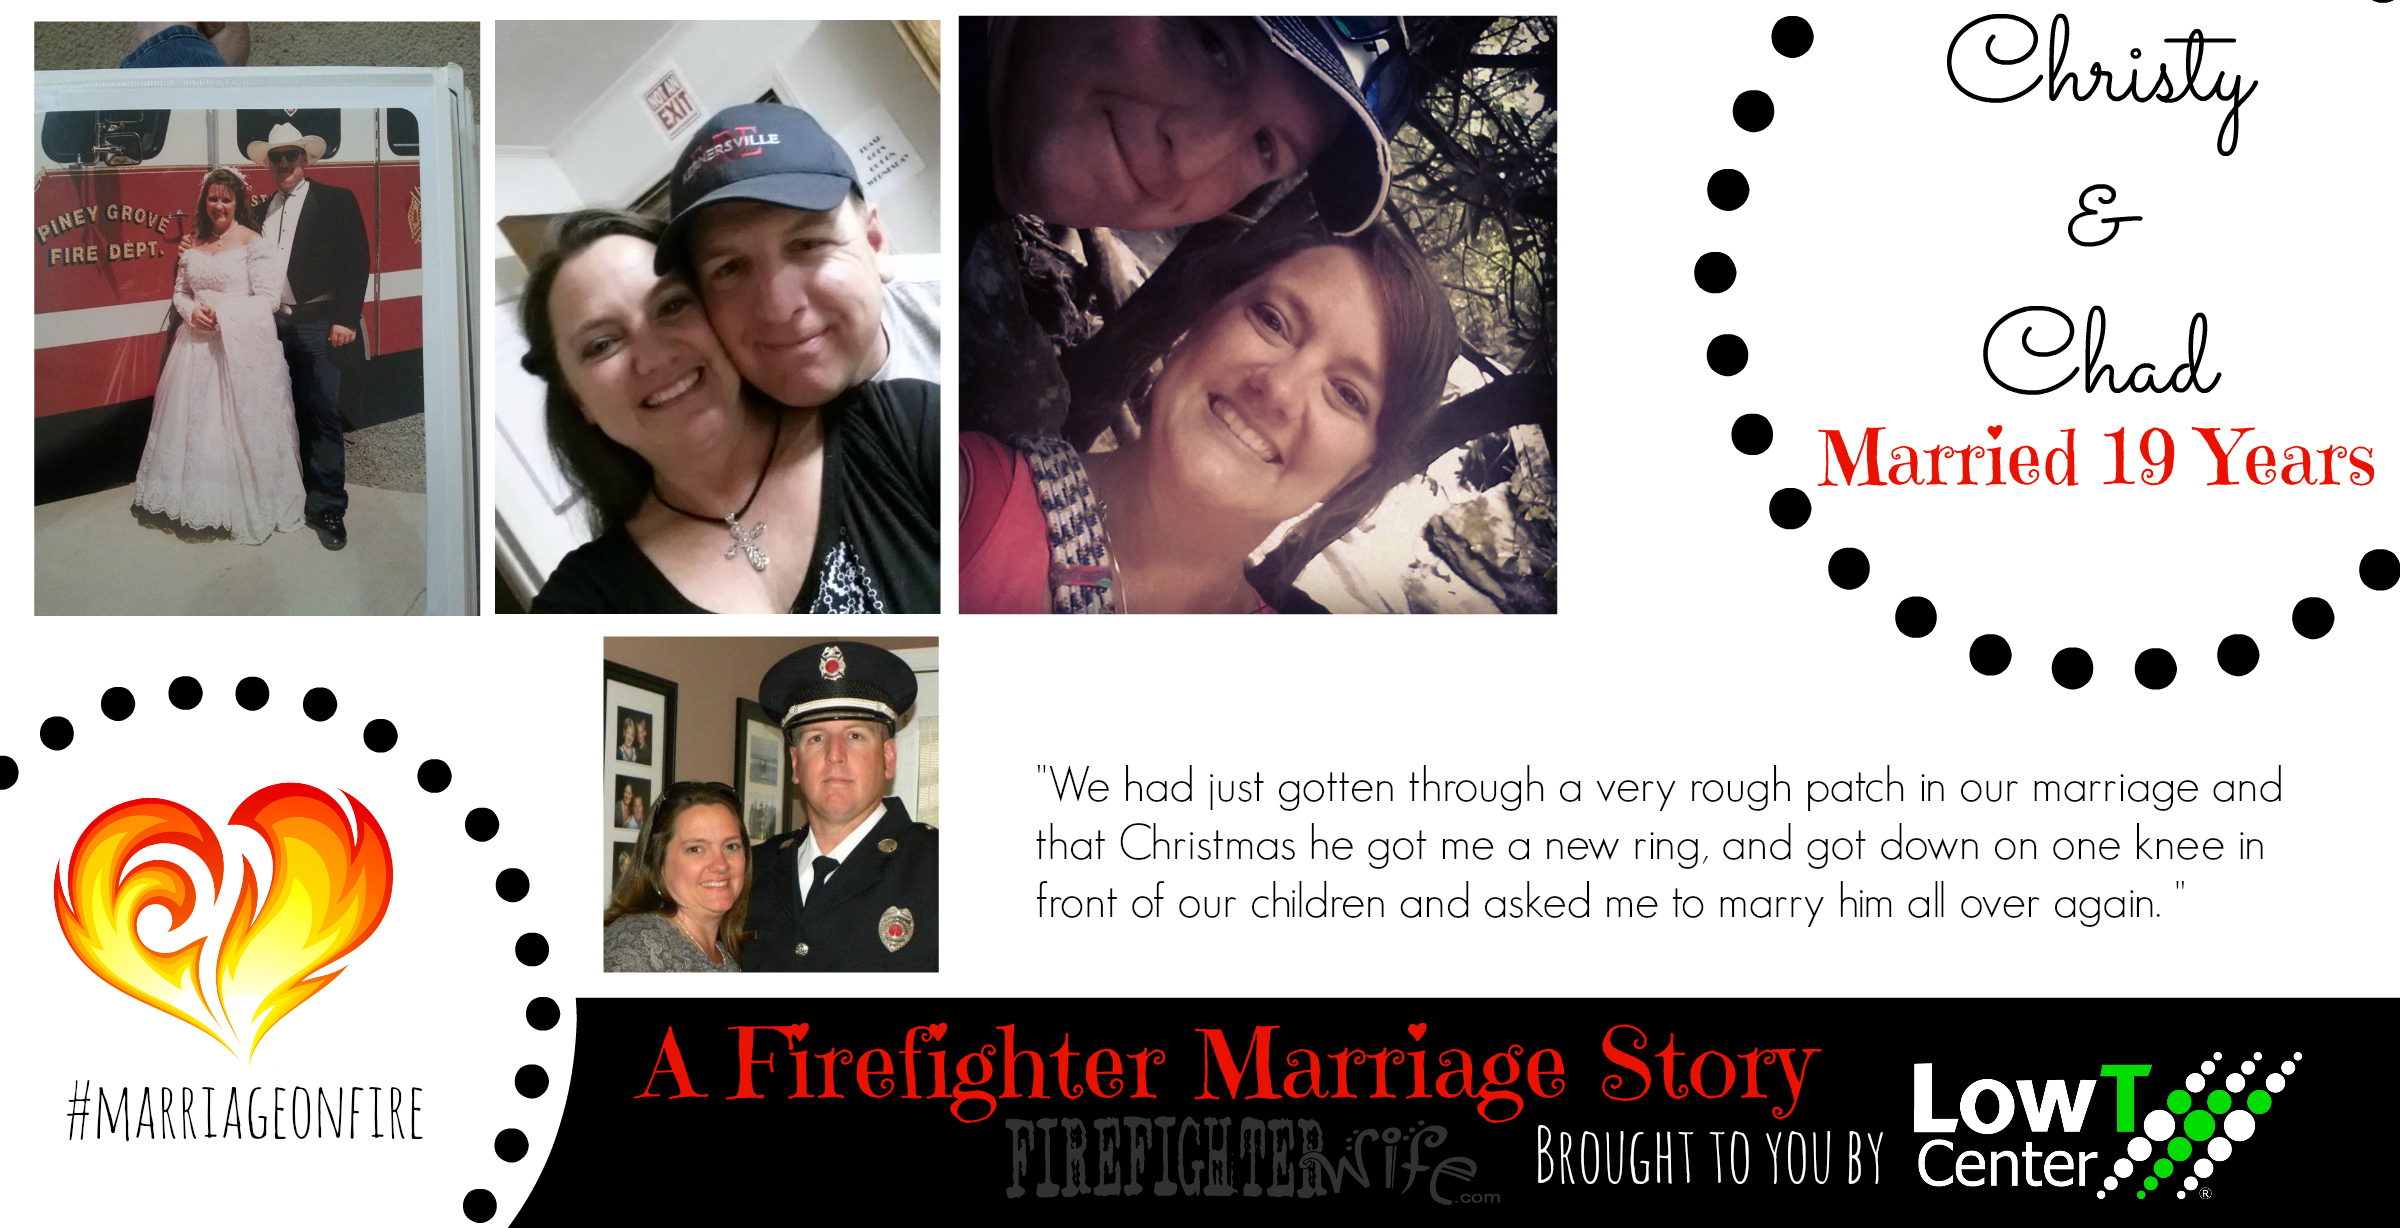 christy lankford marriage on fire